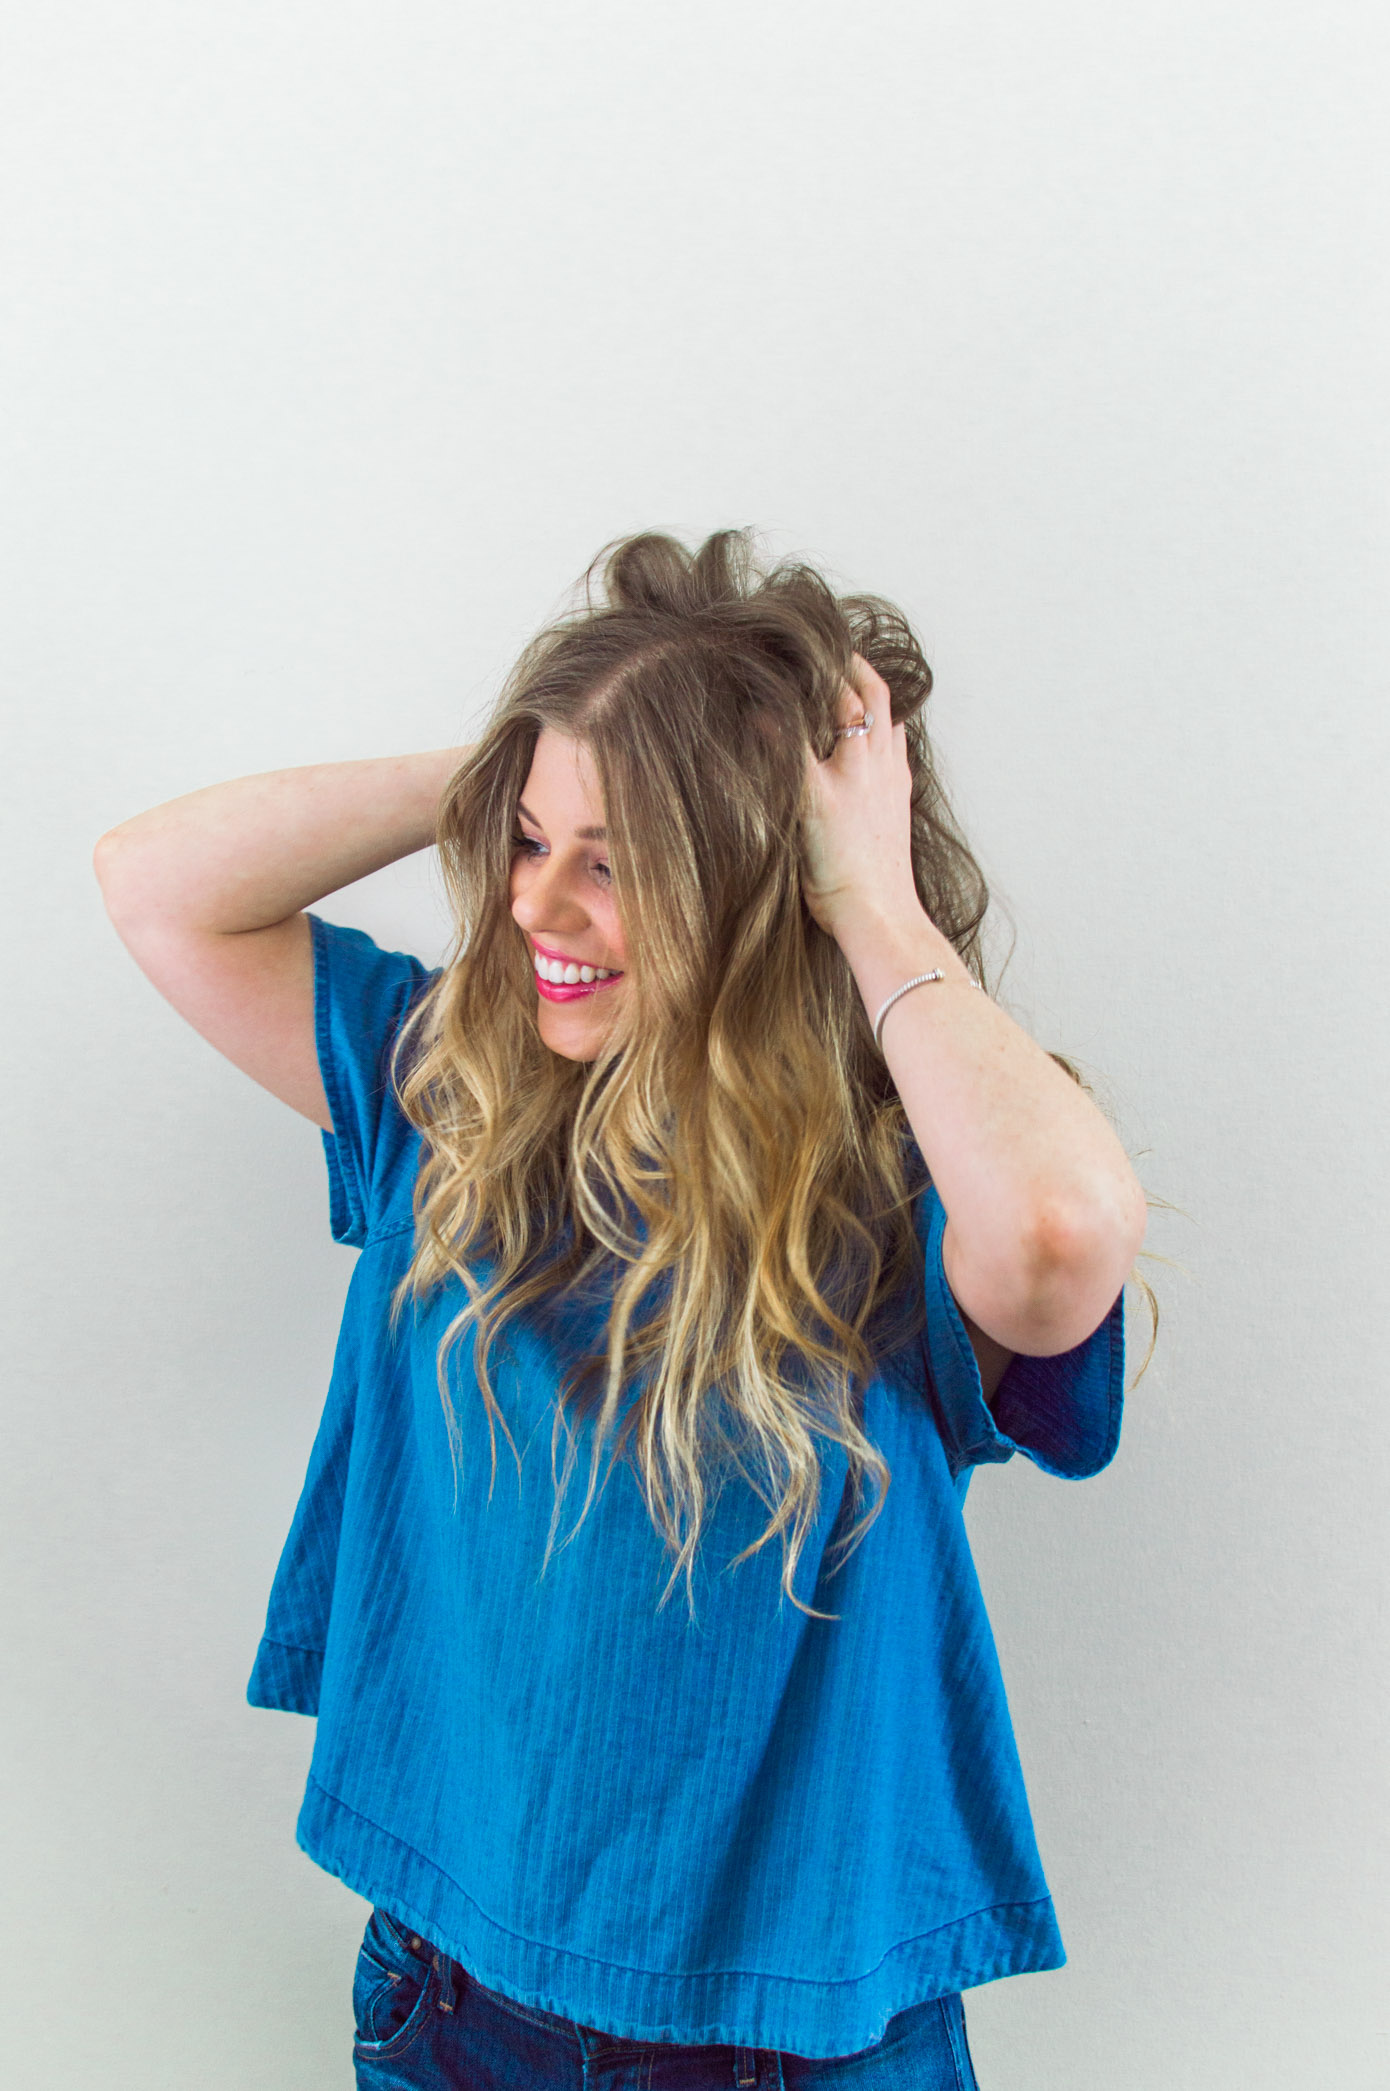 3 Hairstyles for NYFW | Messy Top Knot Hair Tutorials | Louella Reese Life & Style Blog